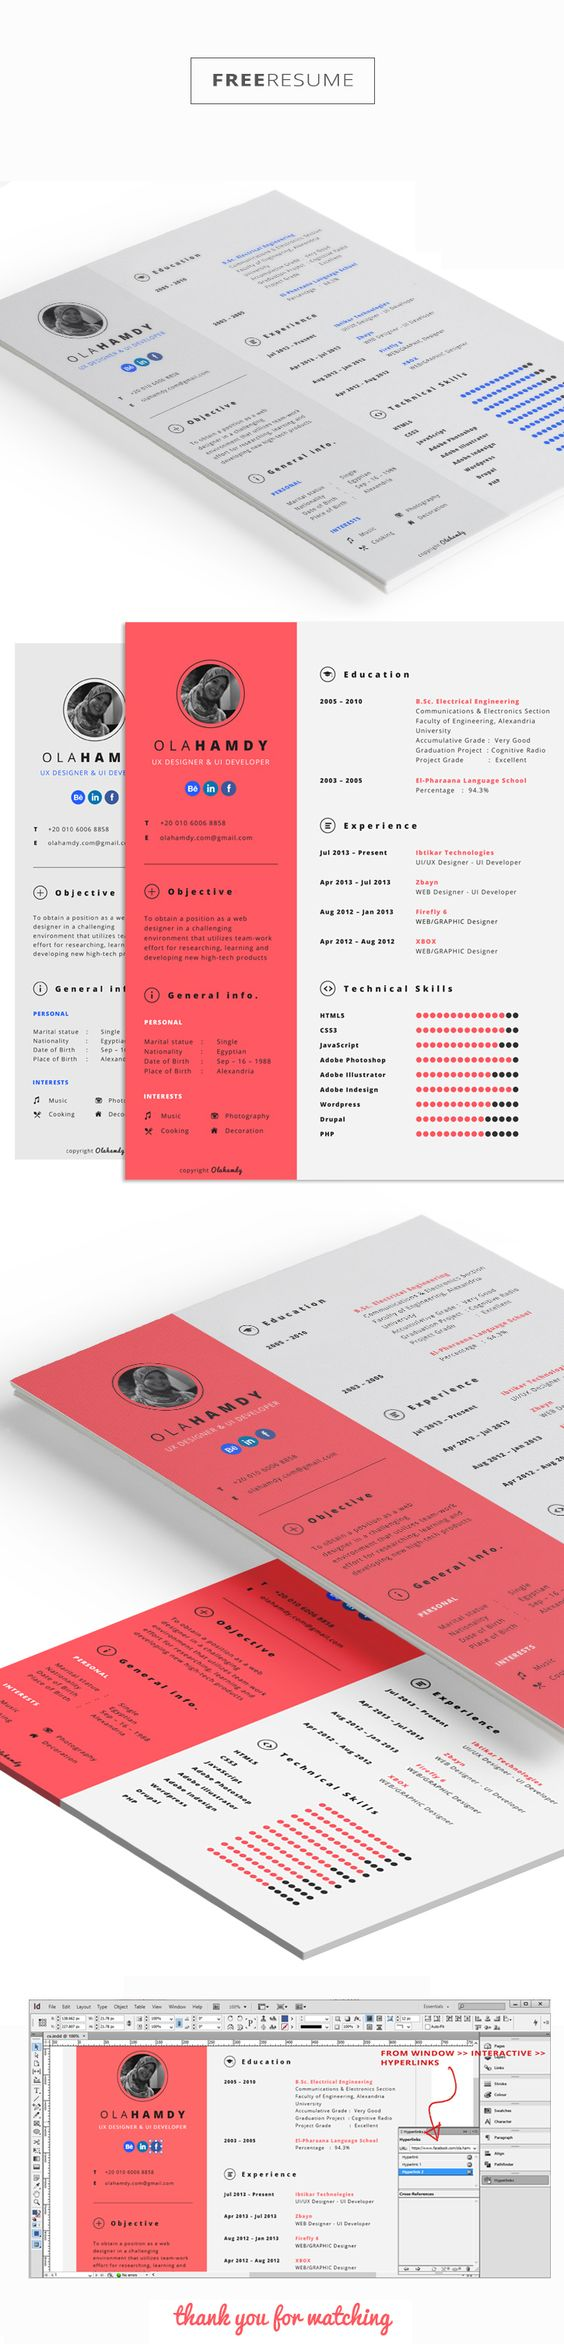 free indesign resume      mediafire com  download